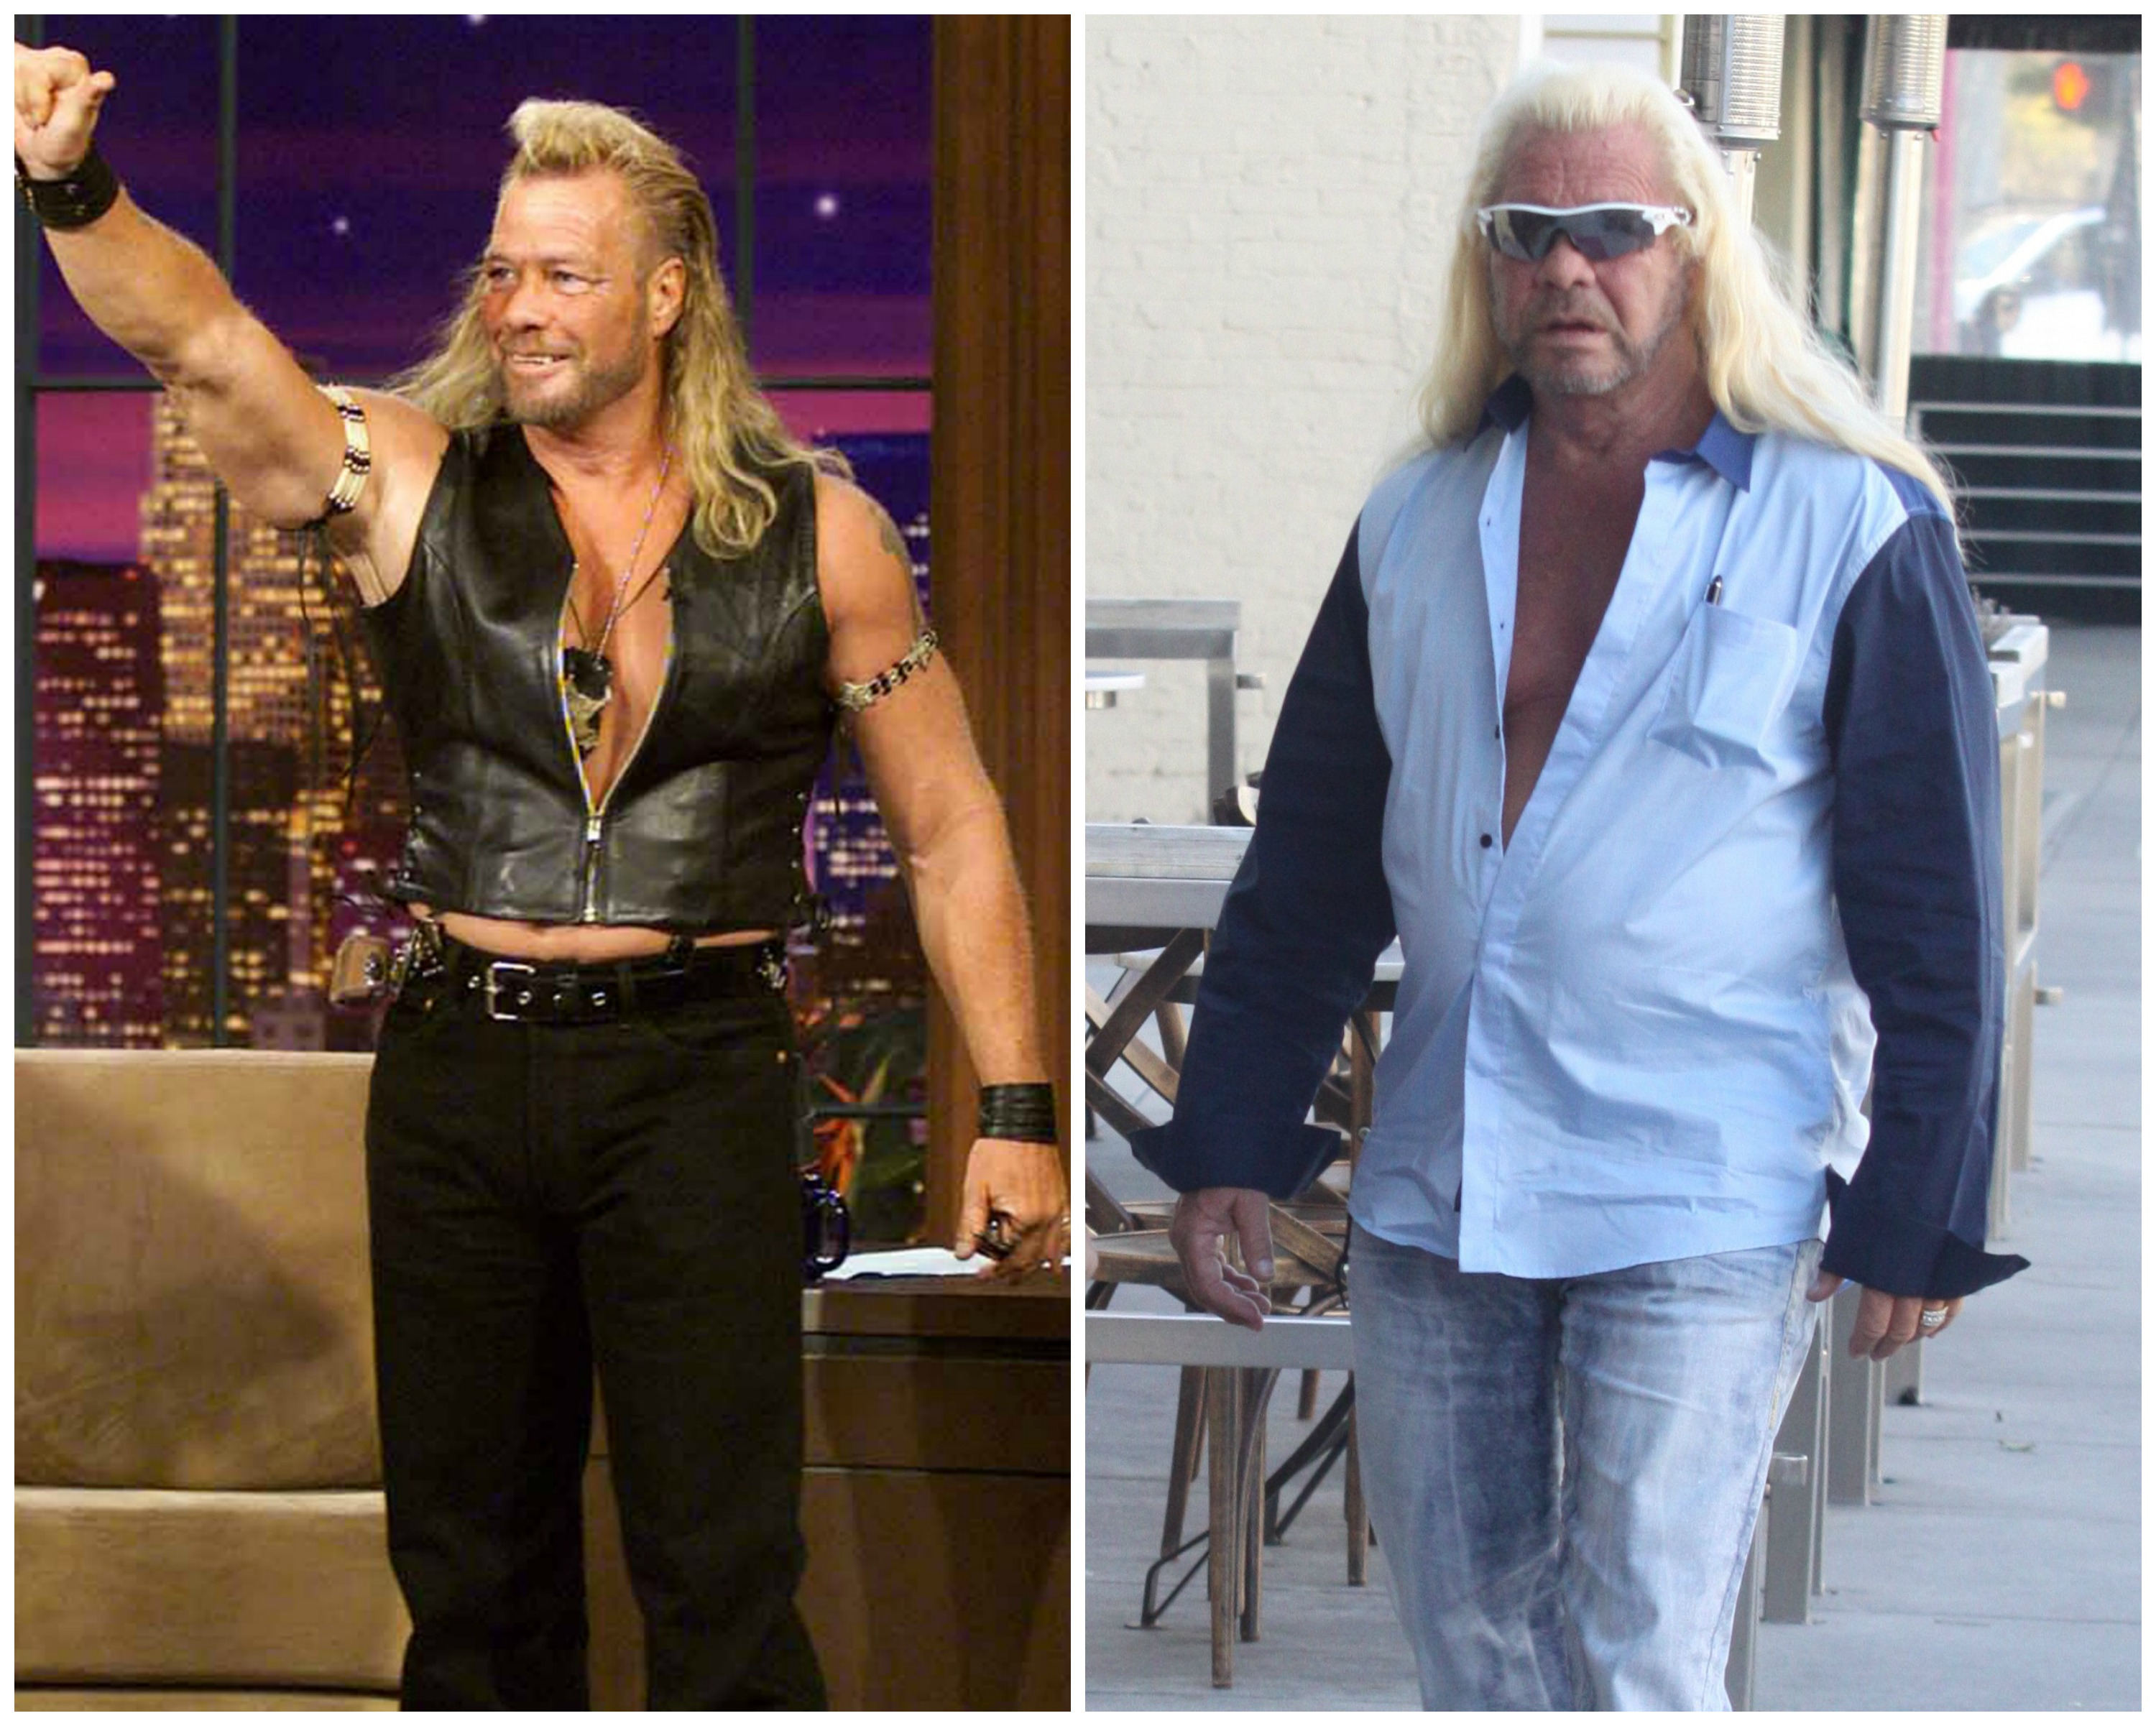 Dog the Bounty Hunter Star Beth: See Her Weight Loss!